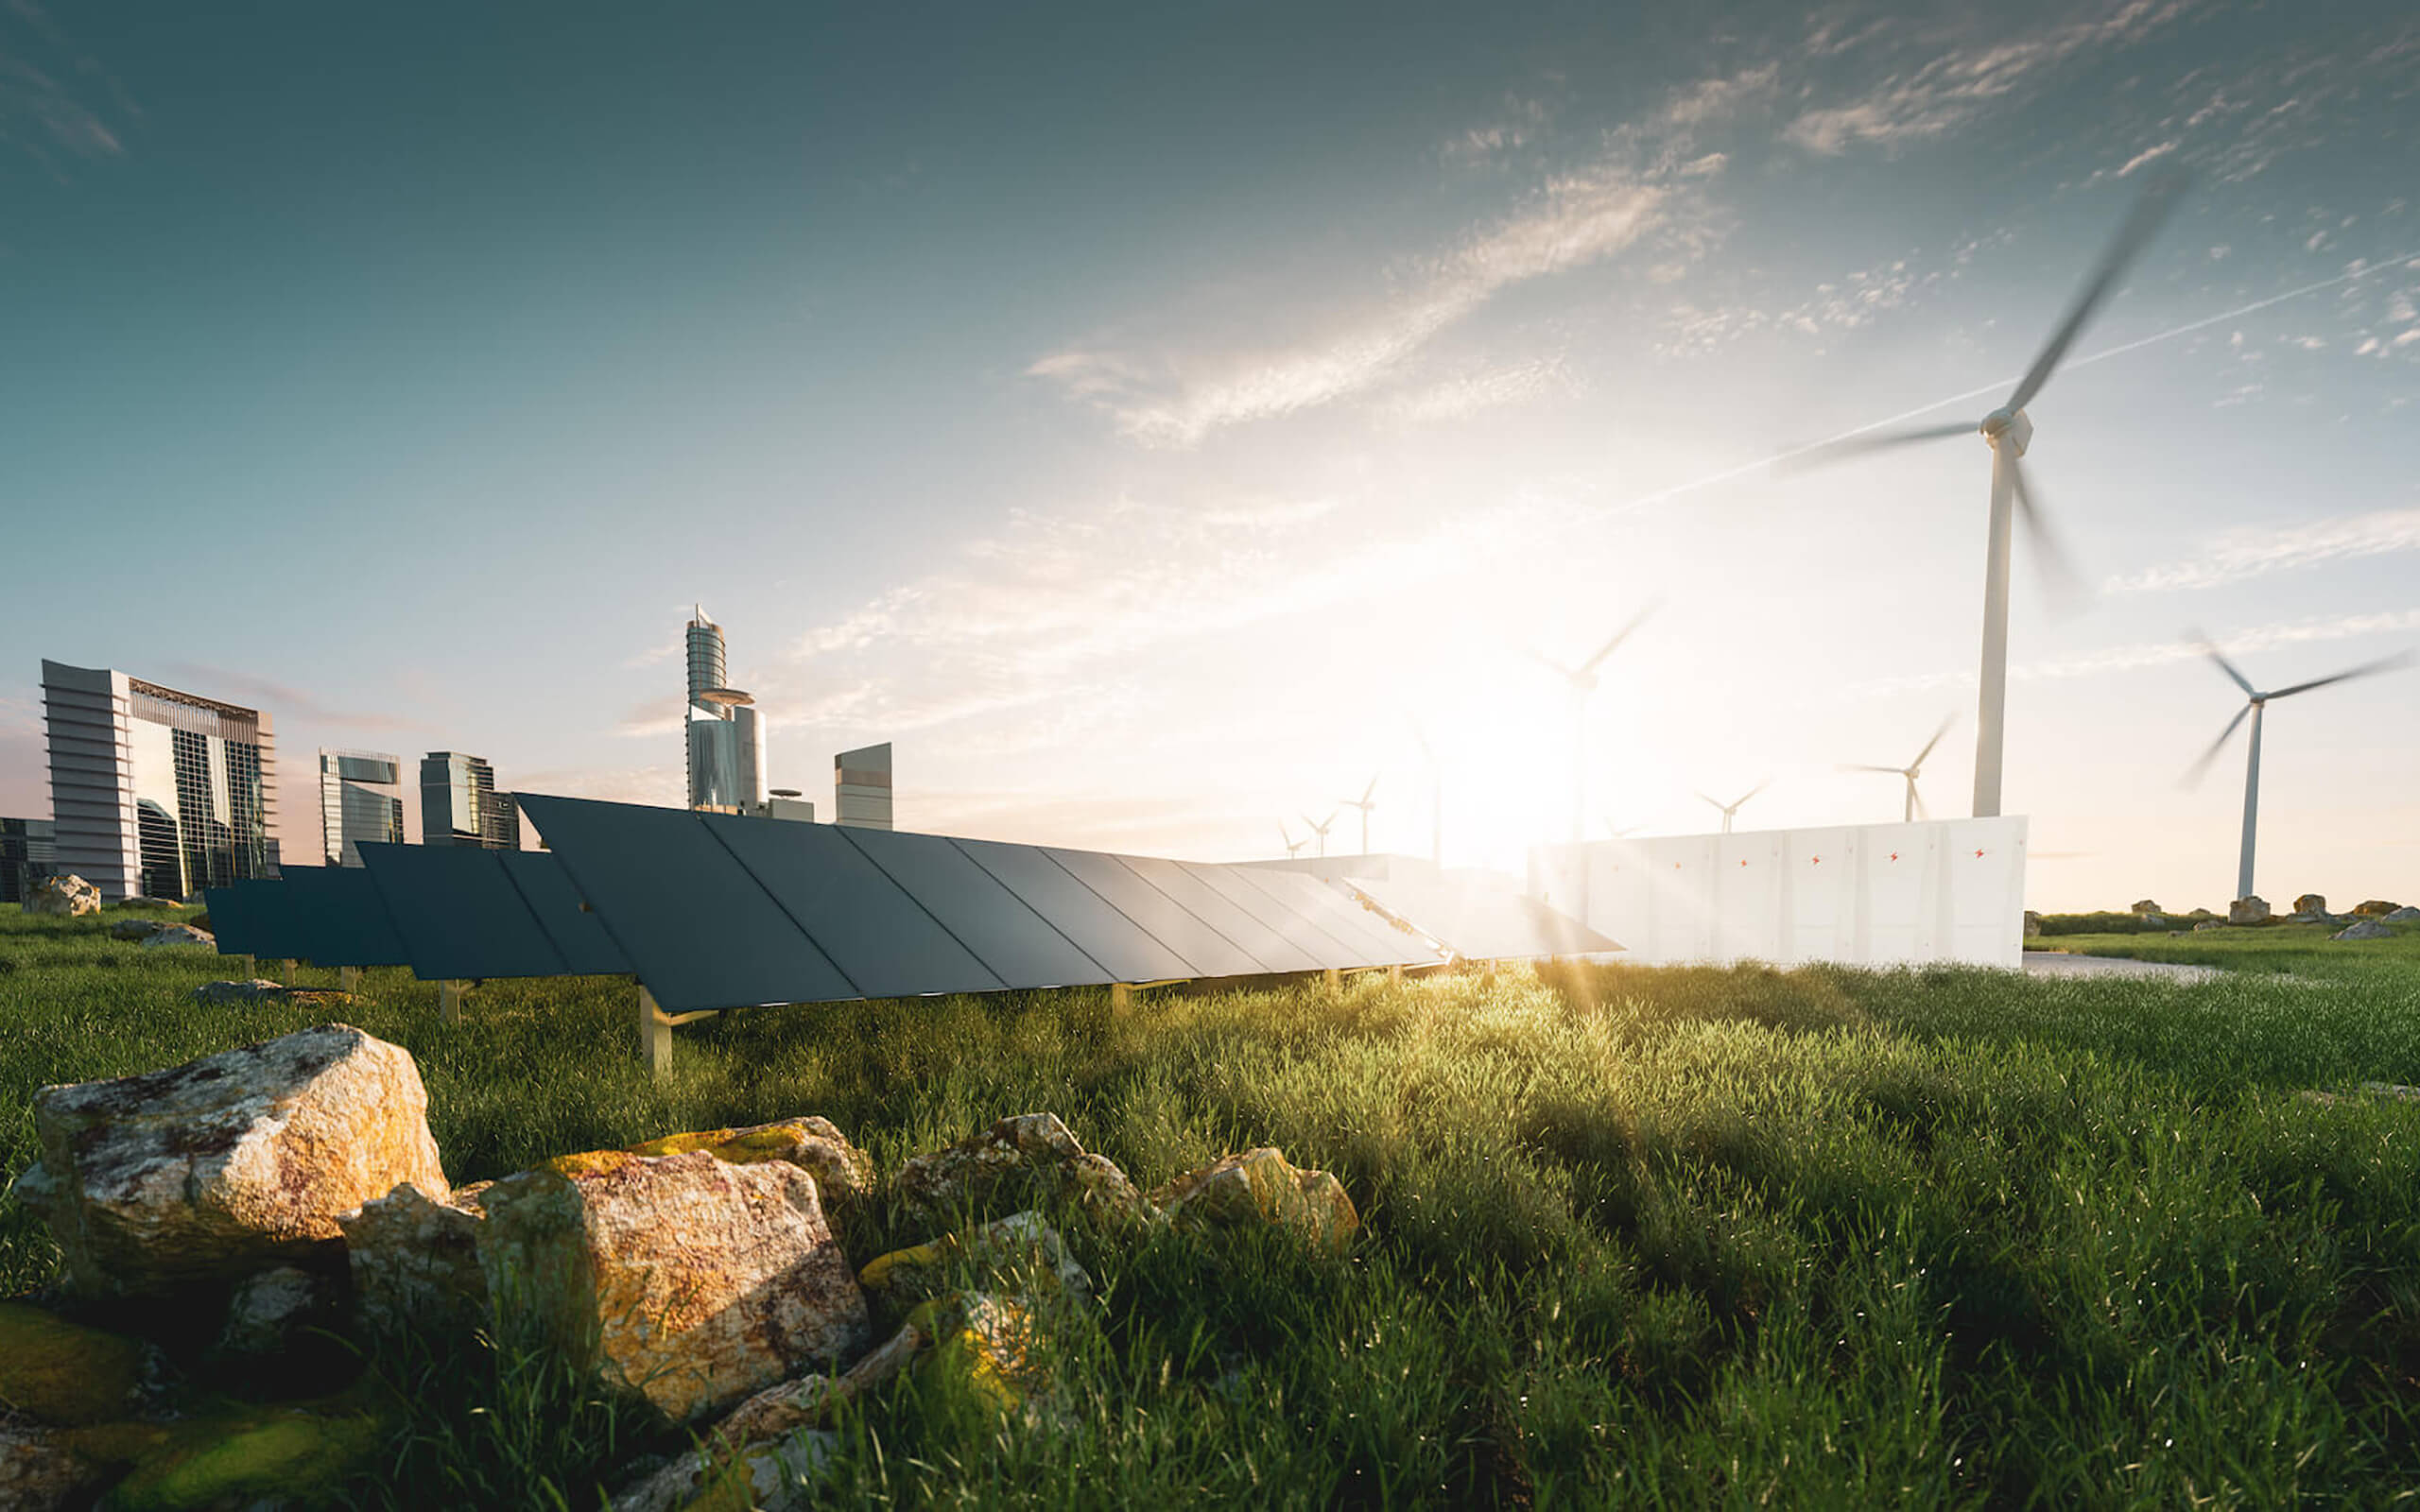 Solar panels and wind turbines with city backdrop